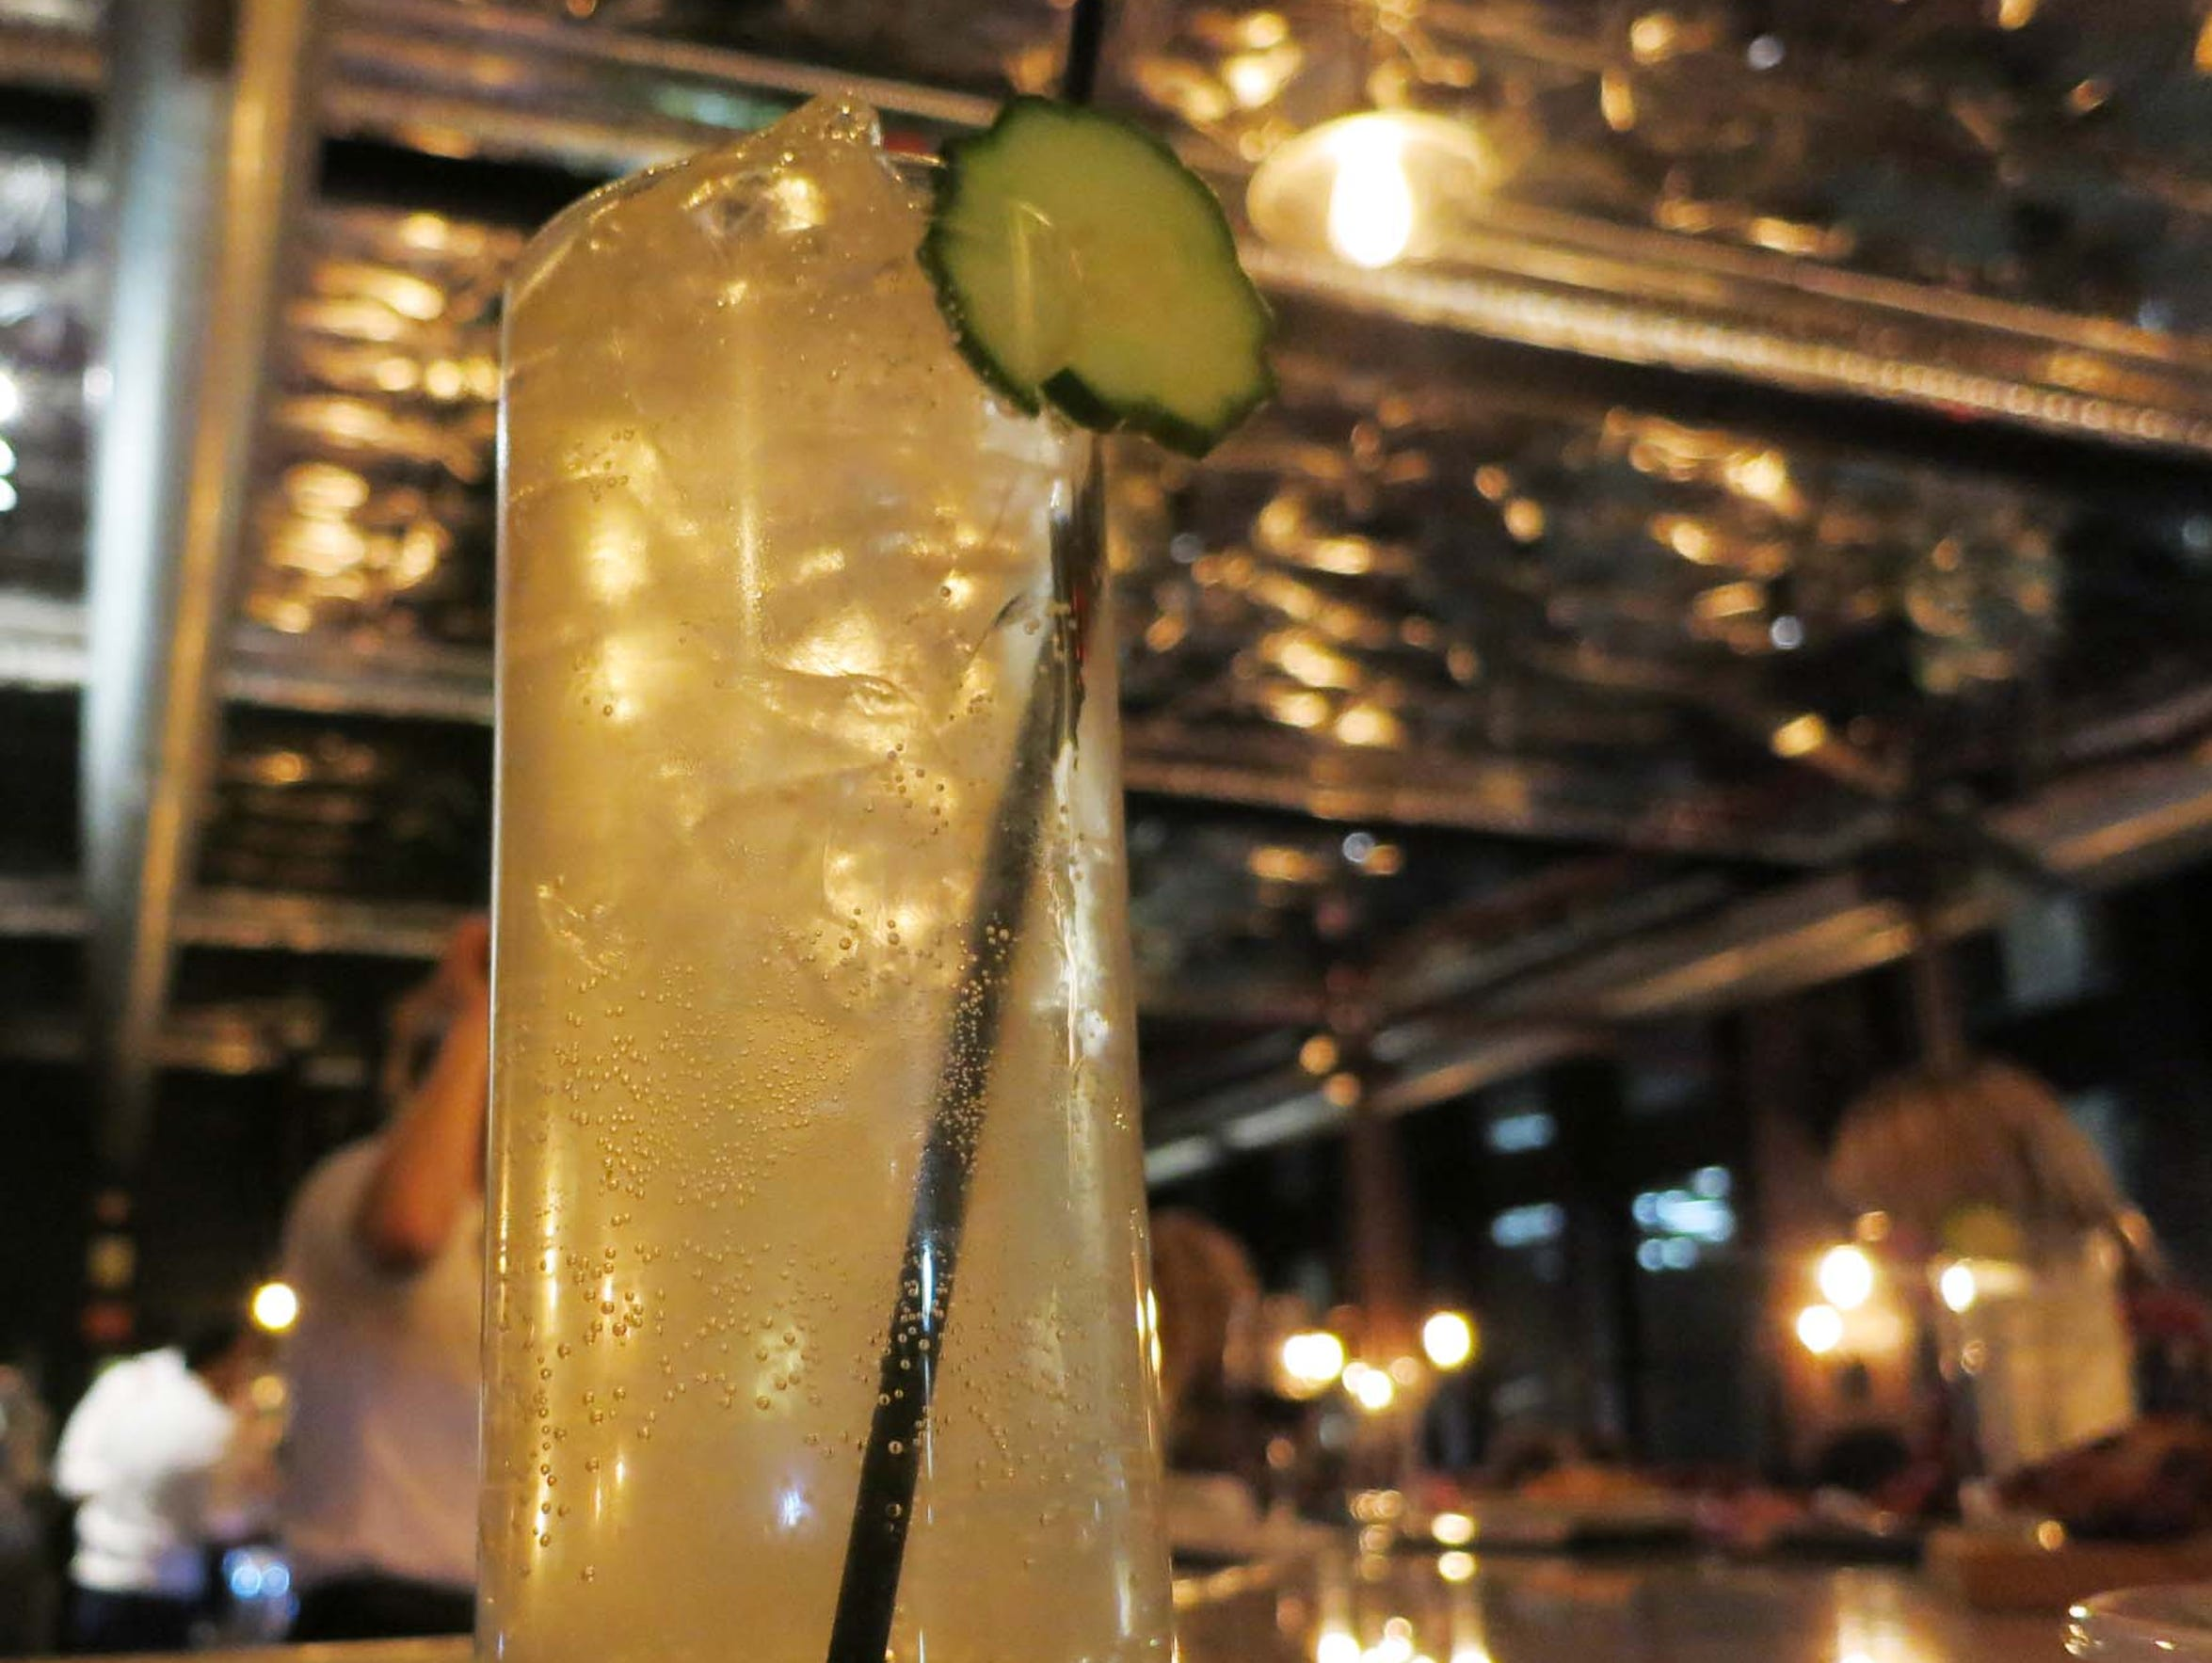 The Cucumber cocktail at Wright & Co. in Detroit is